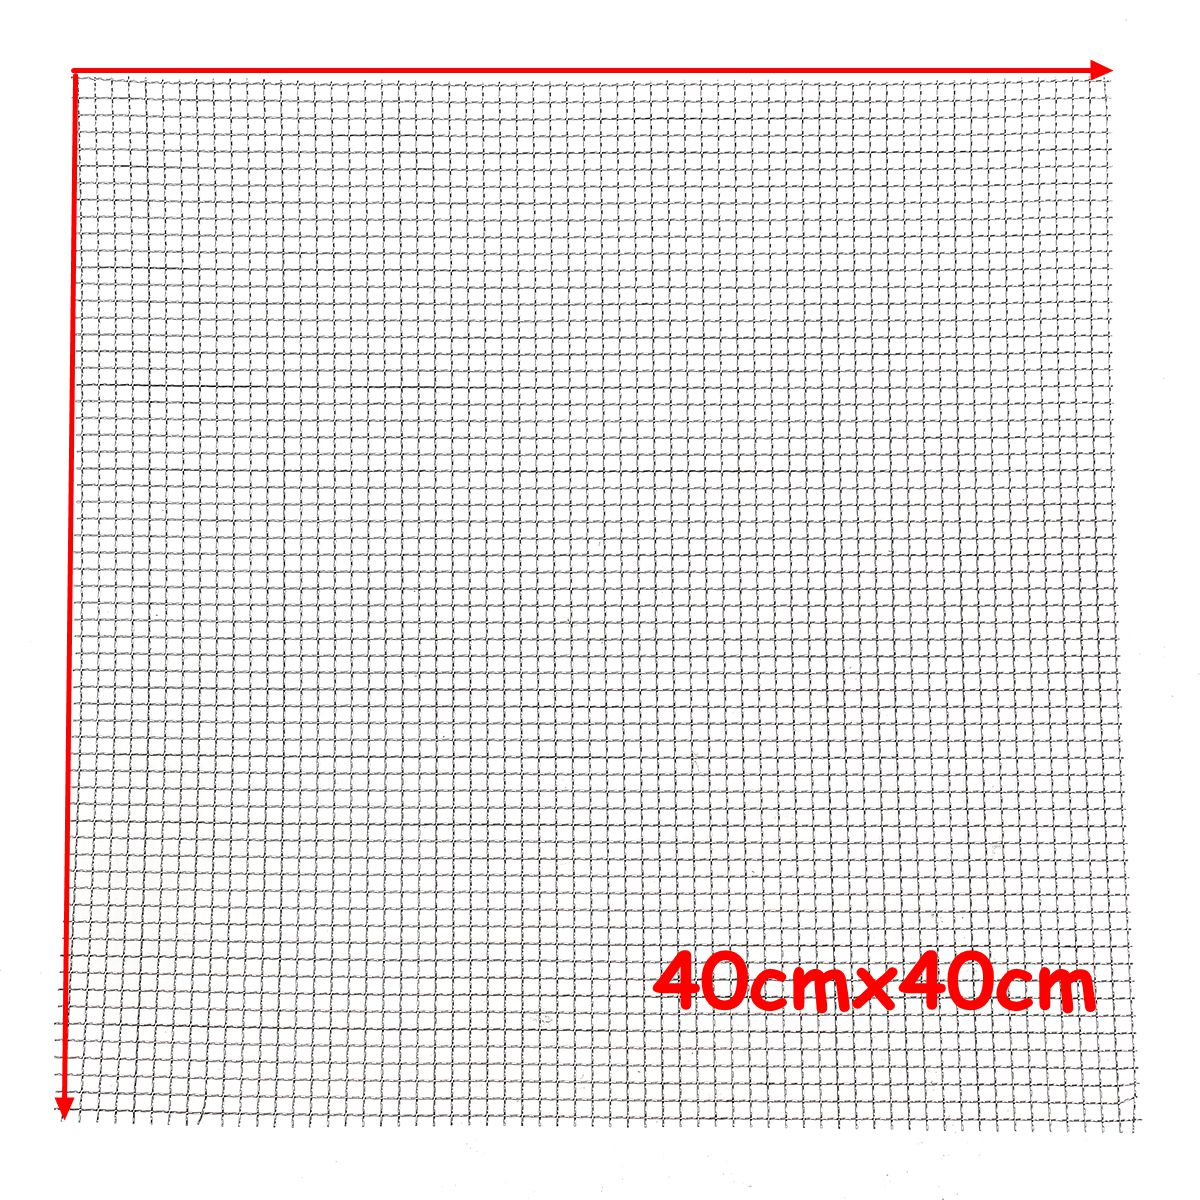 NEW Stainless Steel 304 Mesh #4 .047 Wire Cloth Screen Filter 16''x16'' 40cm x 40cm free shipping37mm button badge machine 37mm paper cutter 37mm 1000pcs pin badge materials badge machine for factory sale